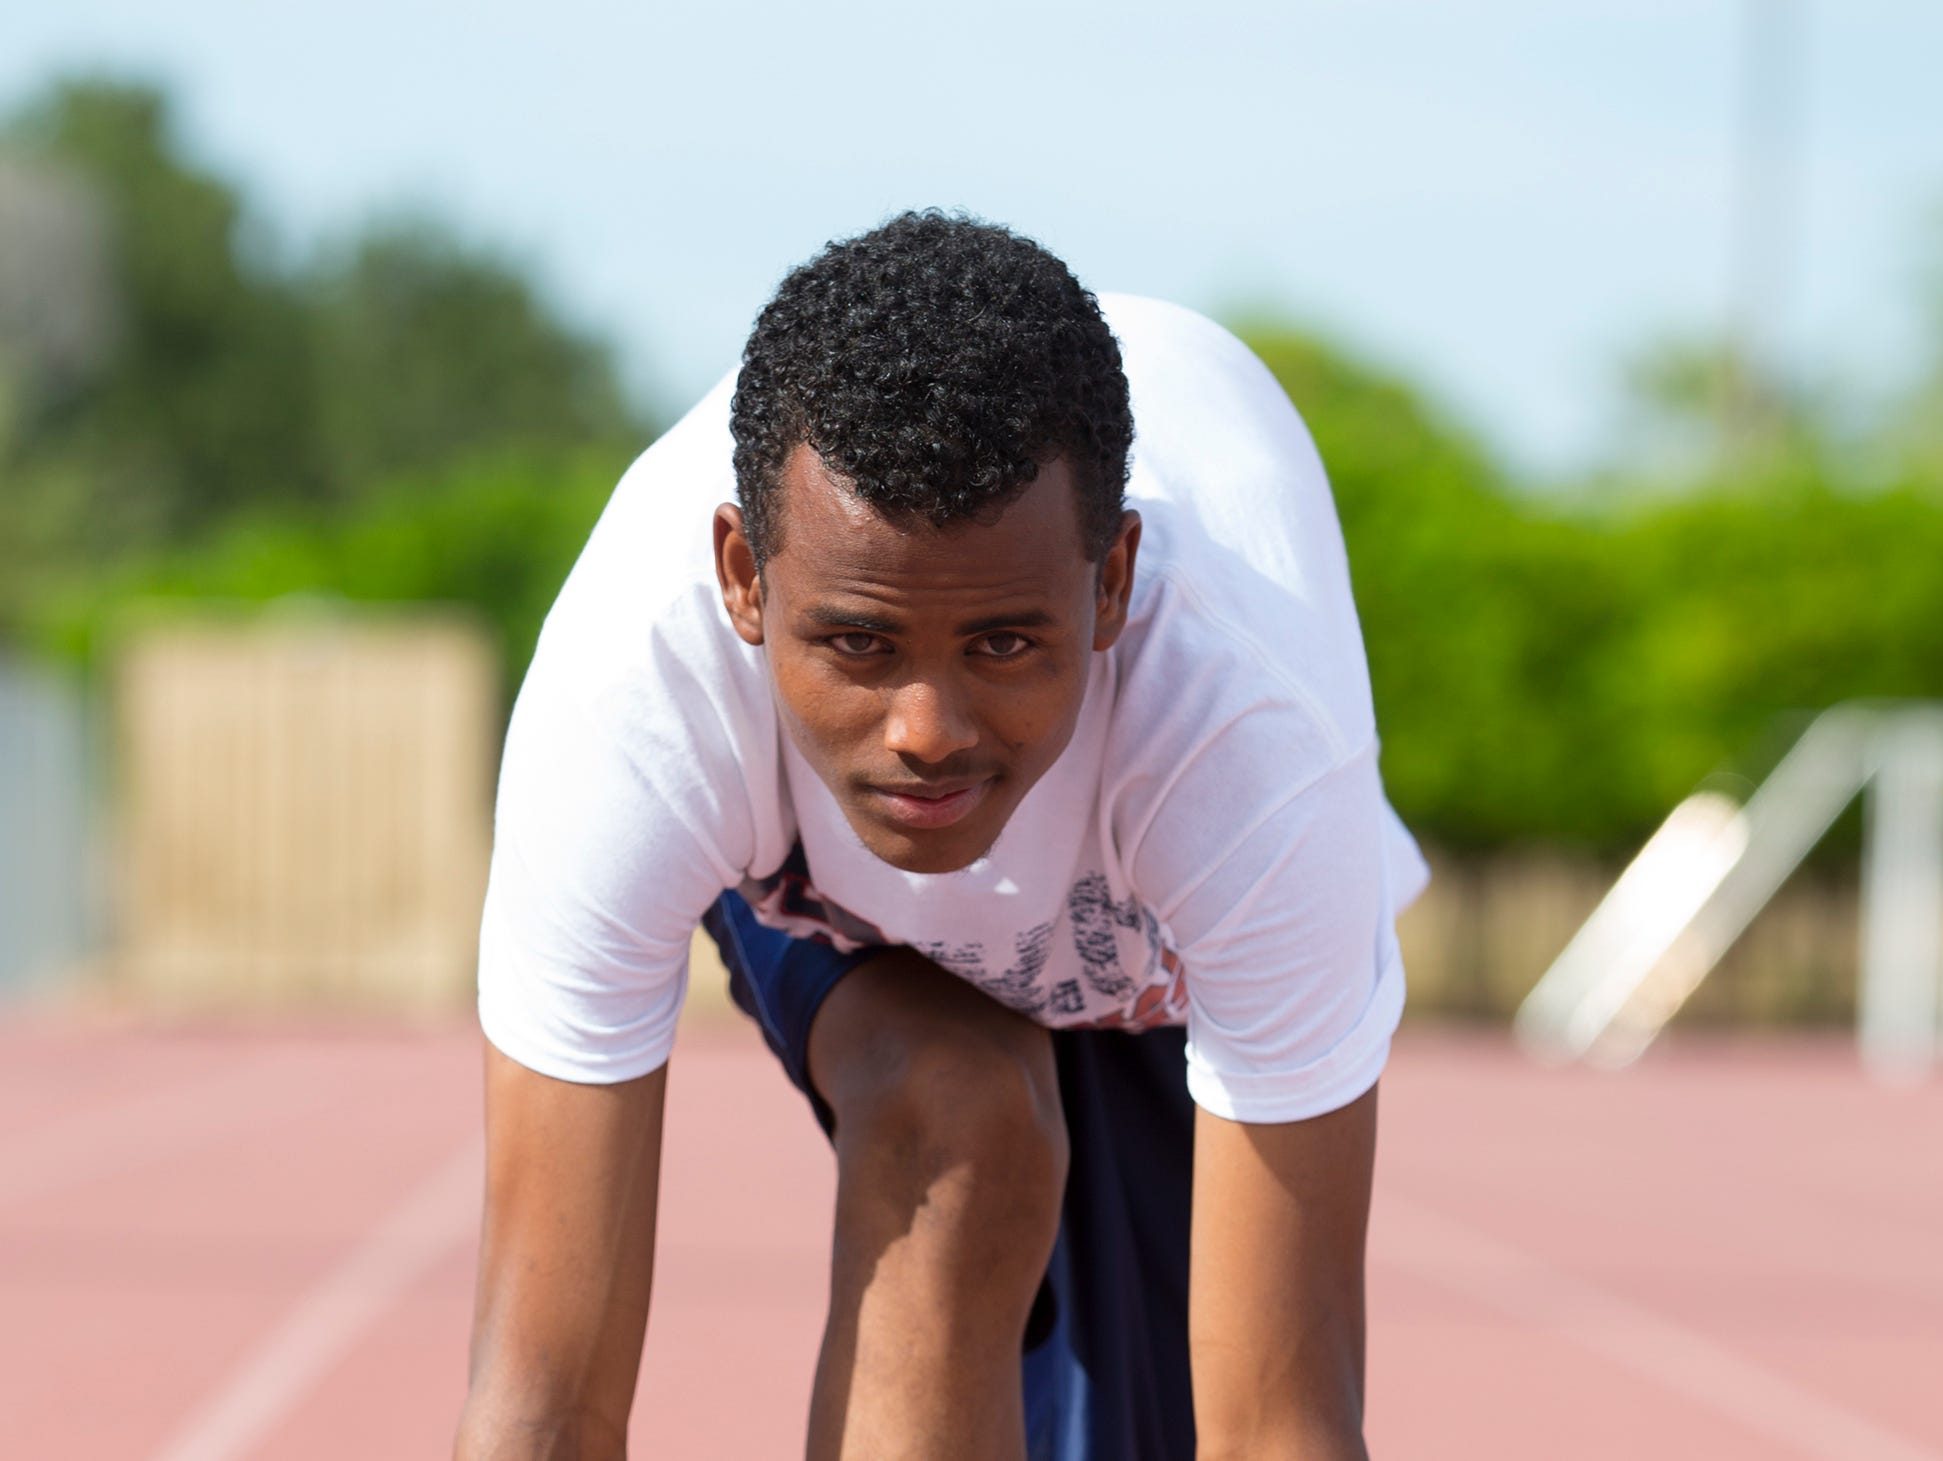 McClintock High School distance runner Abdi Aden, who is from Kenya, works part-time to make money to send to his mother. He found out his mother was still alive last year and is motivated at work, school and on the track to see her again.